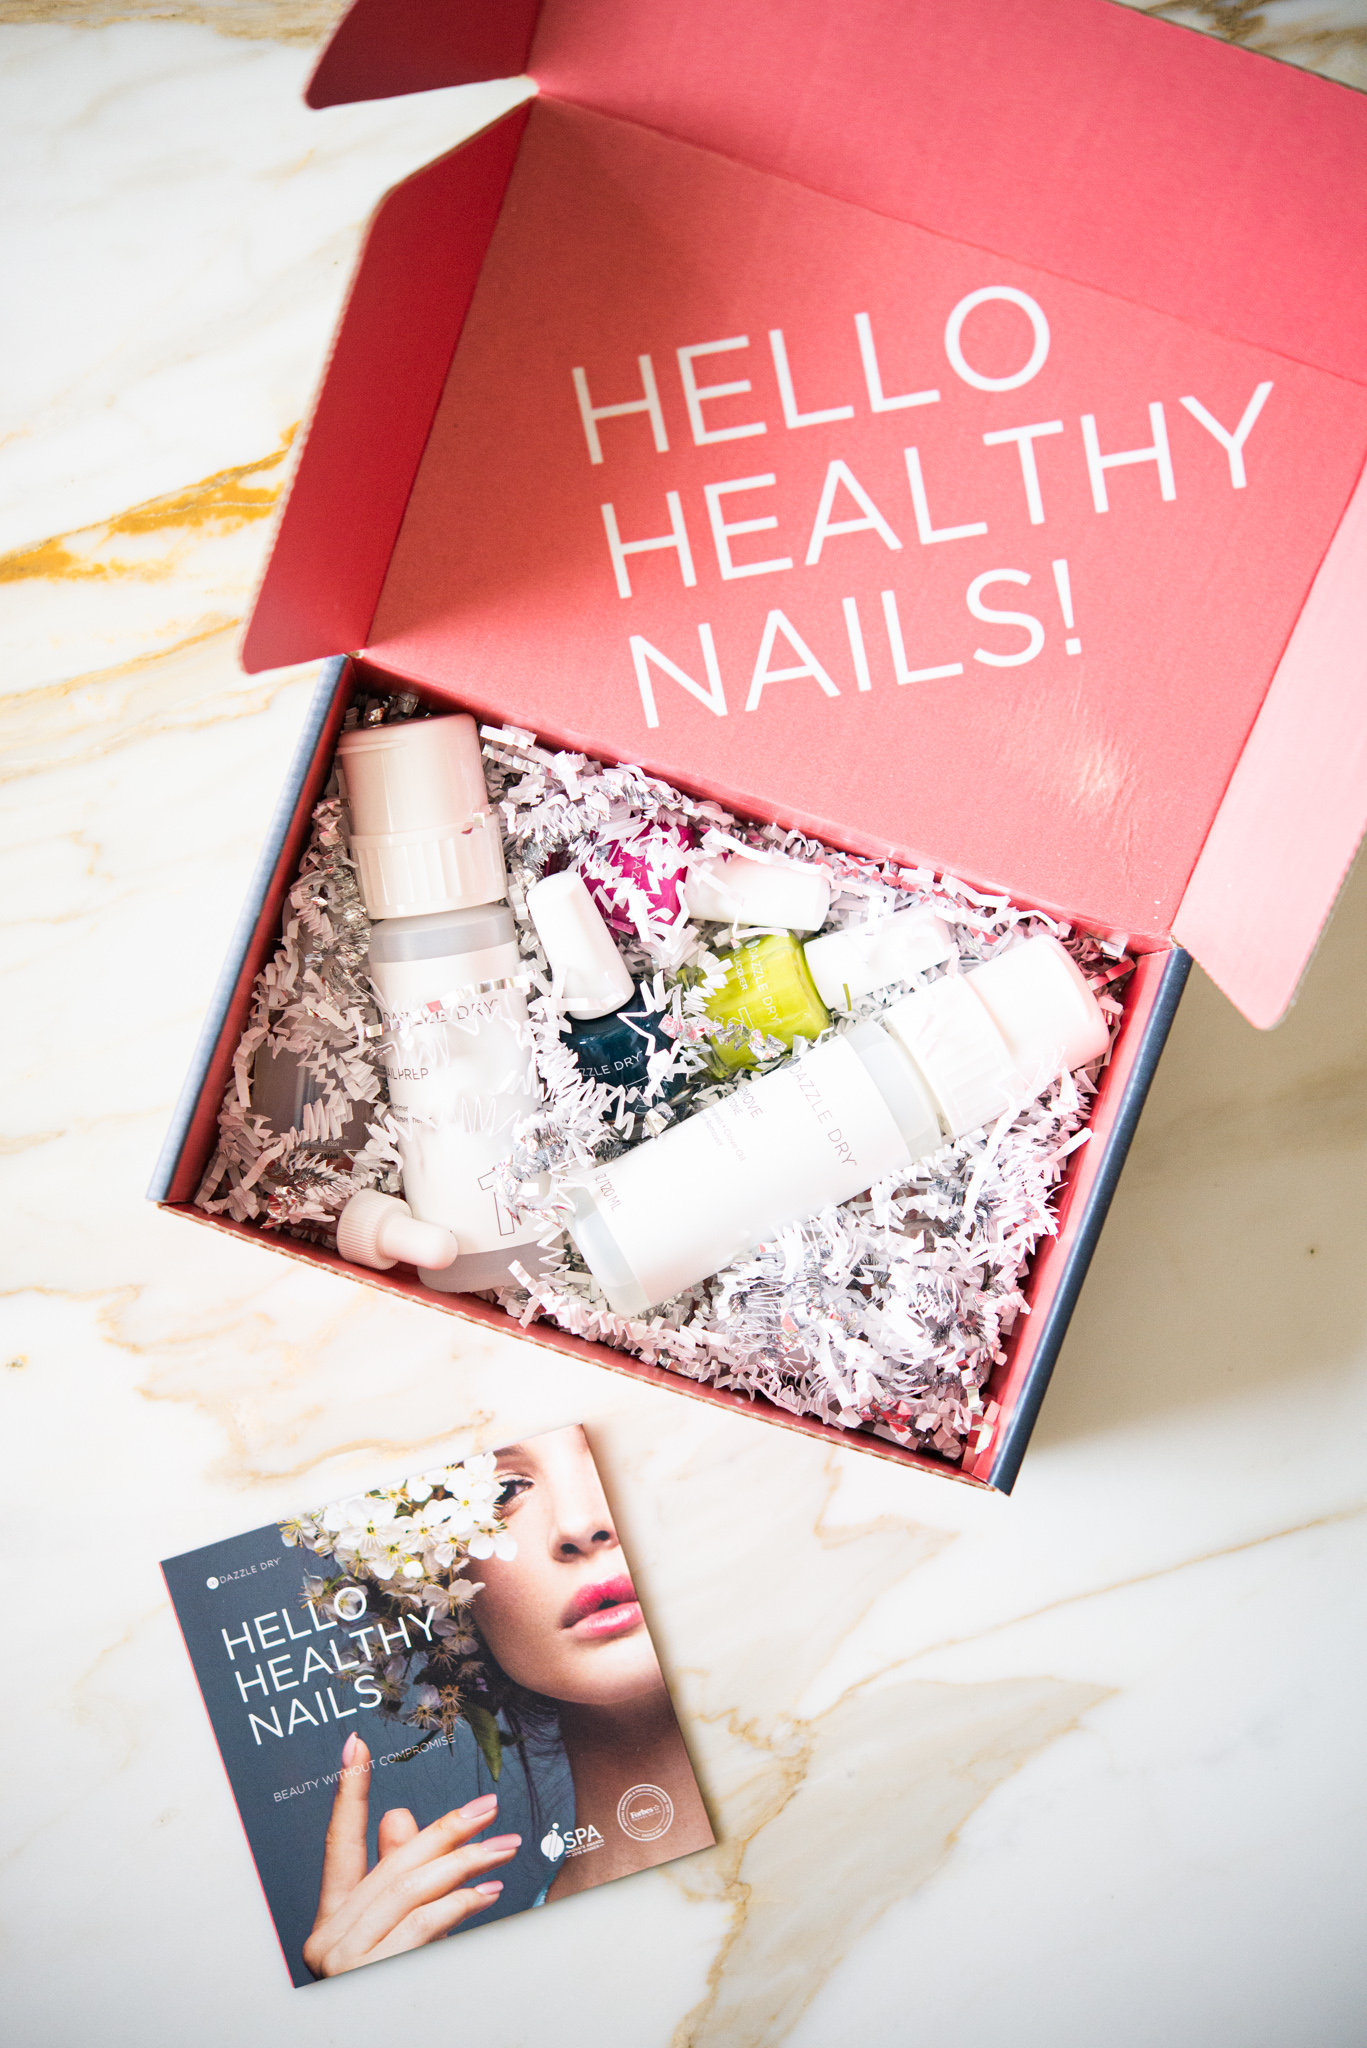 pink box filled with 3 colors of nail polish, two clear polishes, and polish remover on a marble surface